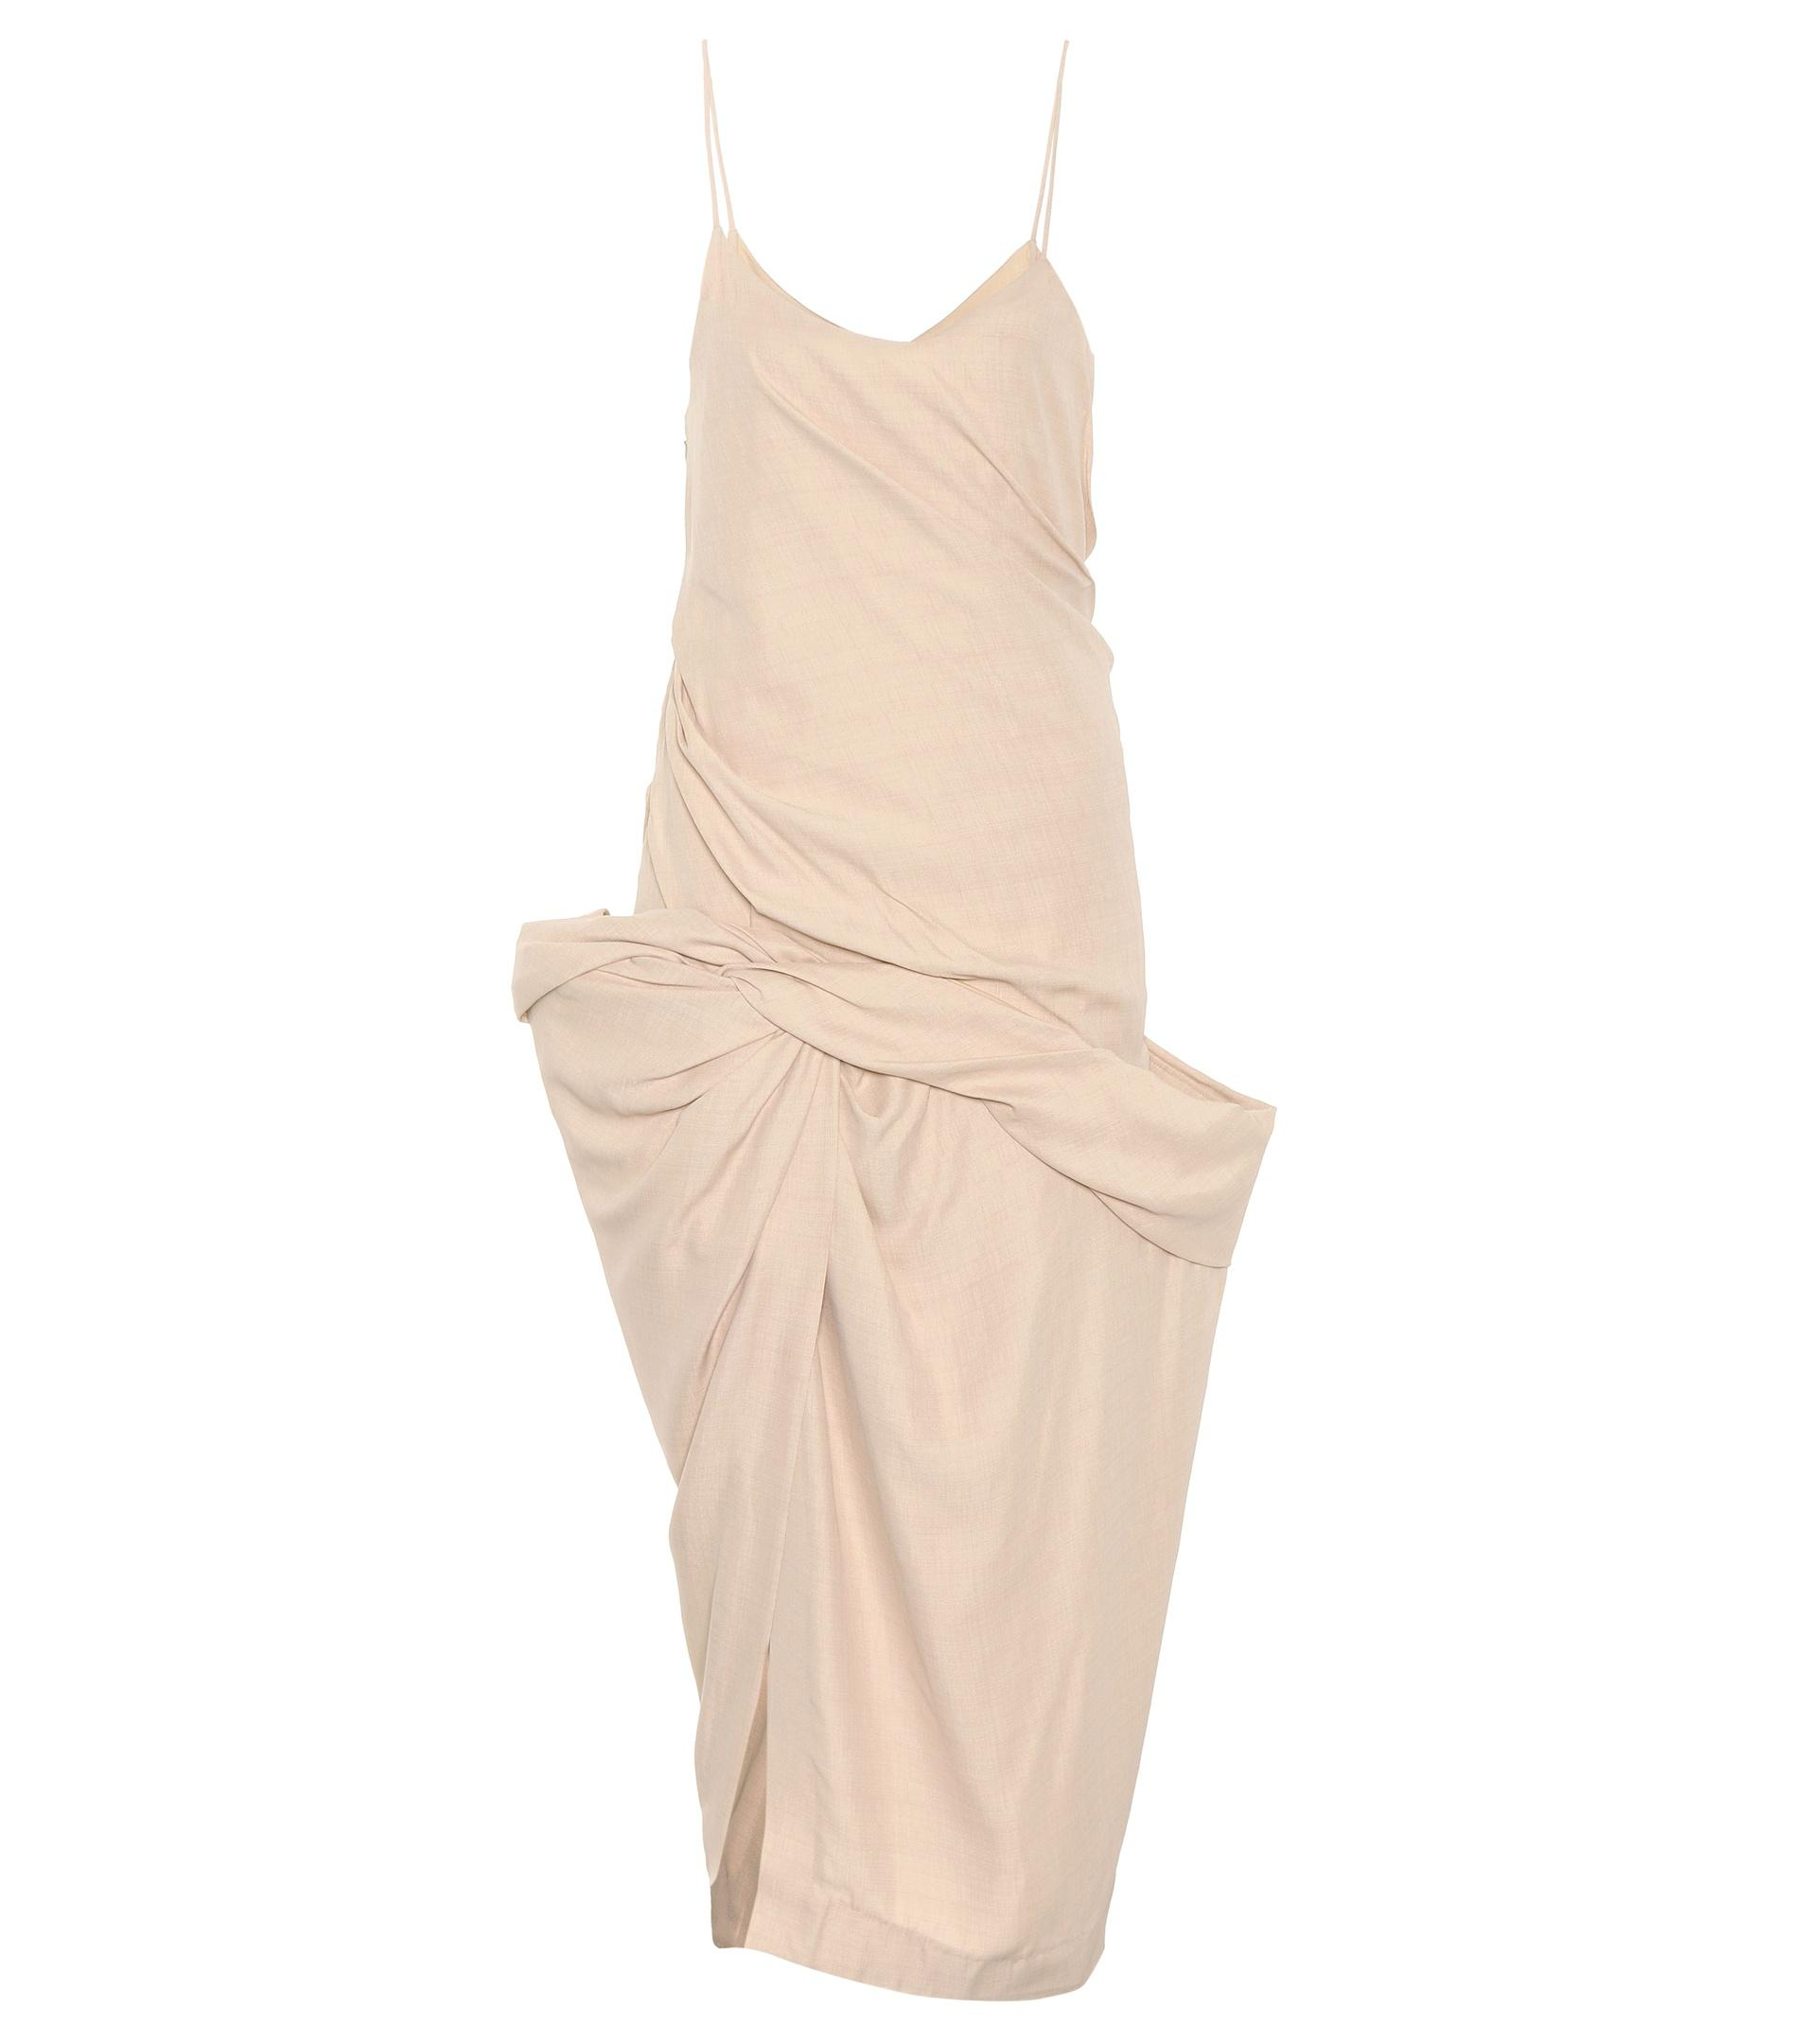 861ed04b03 Jacquemus Coracoa Dress in Natural - Lyst